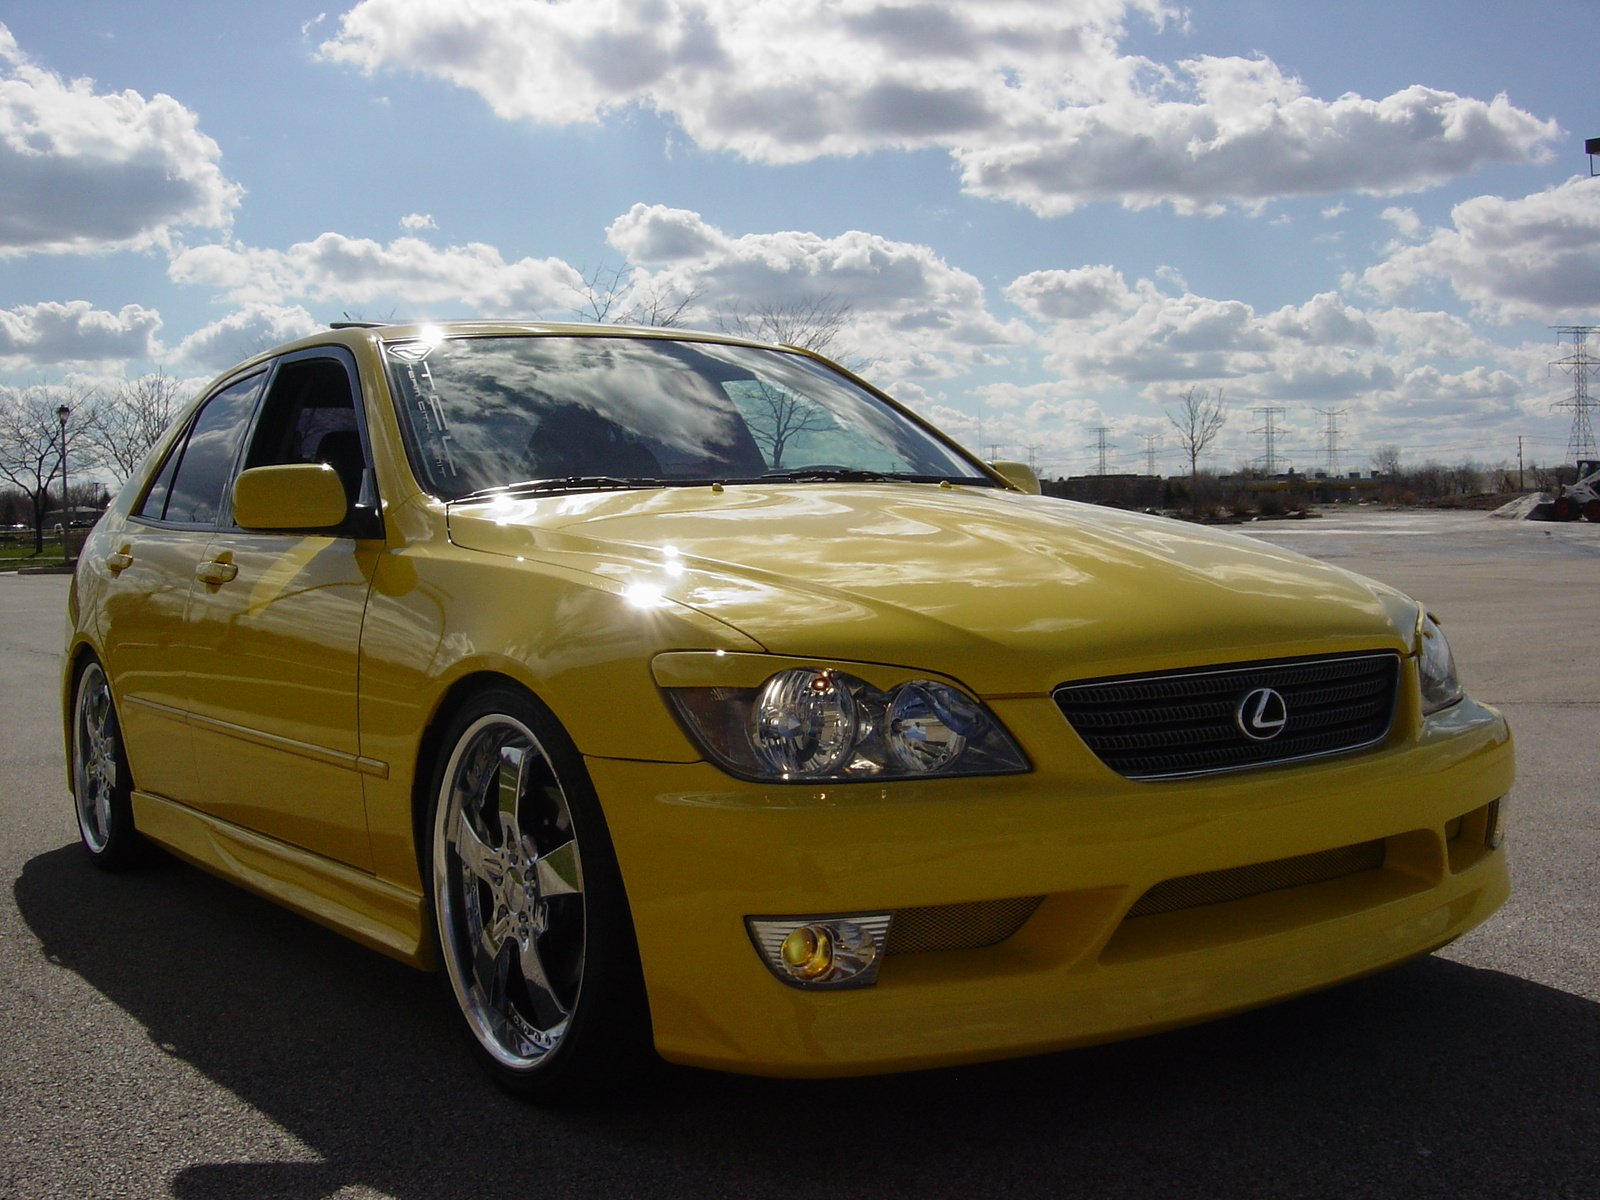 2001 Lexus IS 300 STD picture